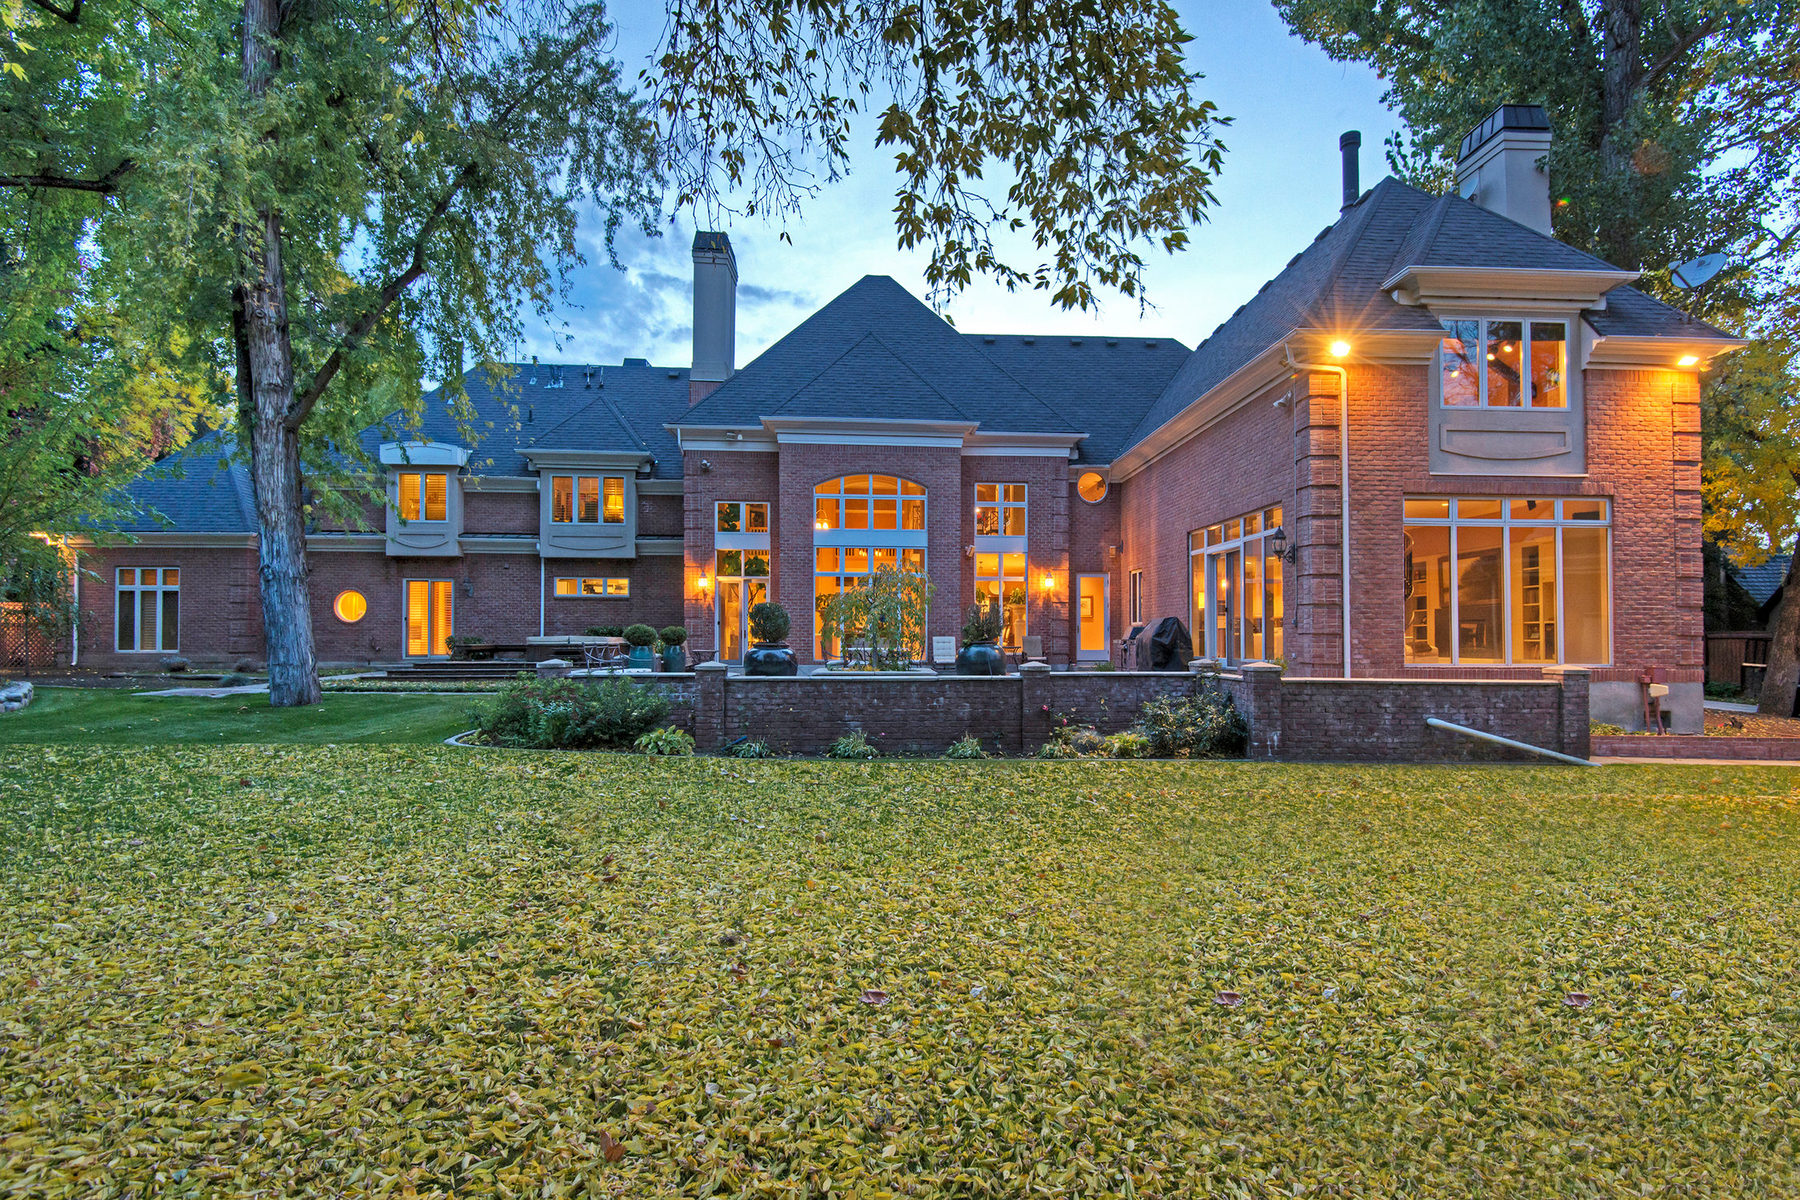 独户住宅 为 销售 在 Stunning, Elegant Estate on Wooded Lot 5497 S Walker Estates Cir Salt Lake City, 犹他州 84117 美国